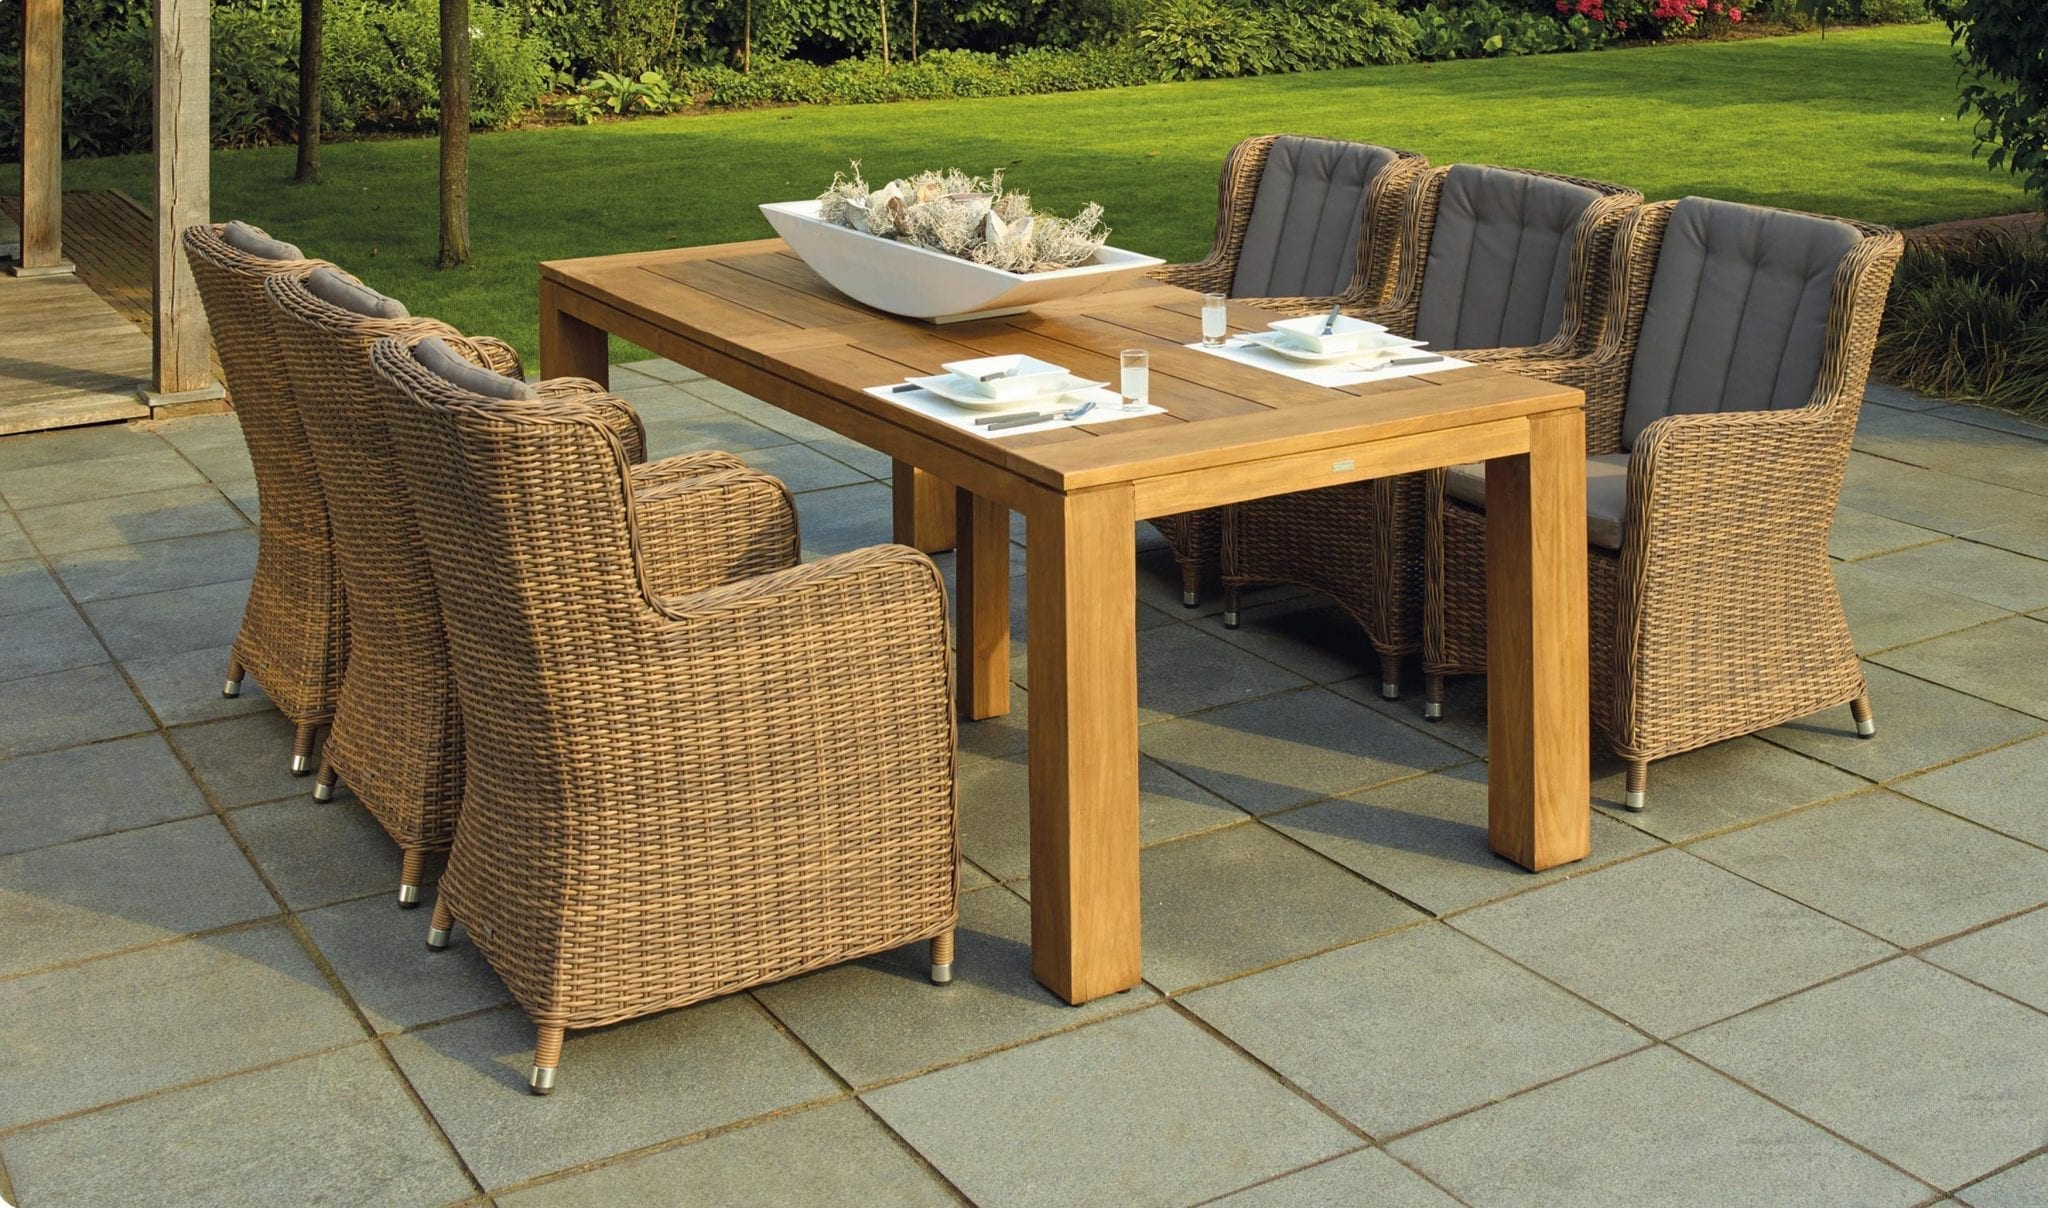 How To Keep Your Patio Furniture From Corroding In The Sea Air